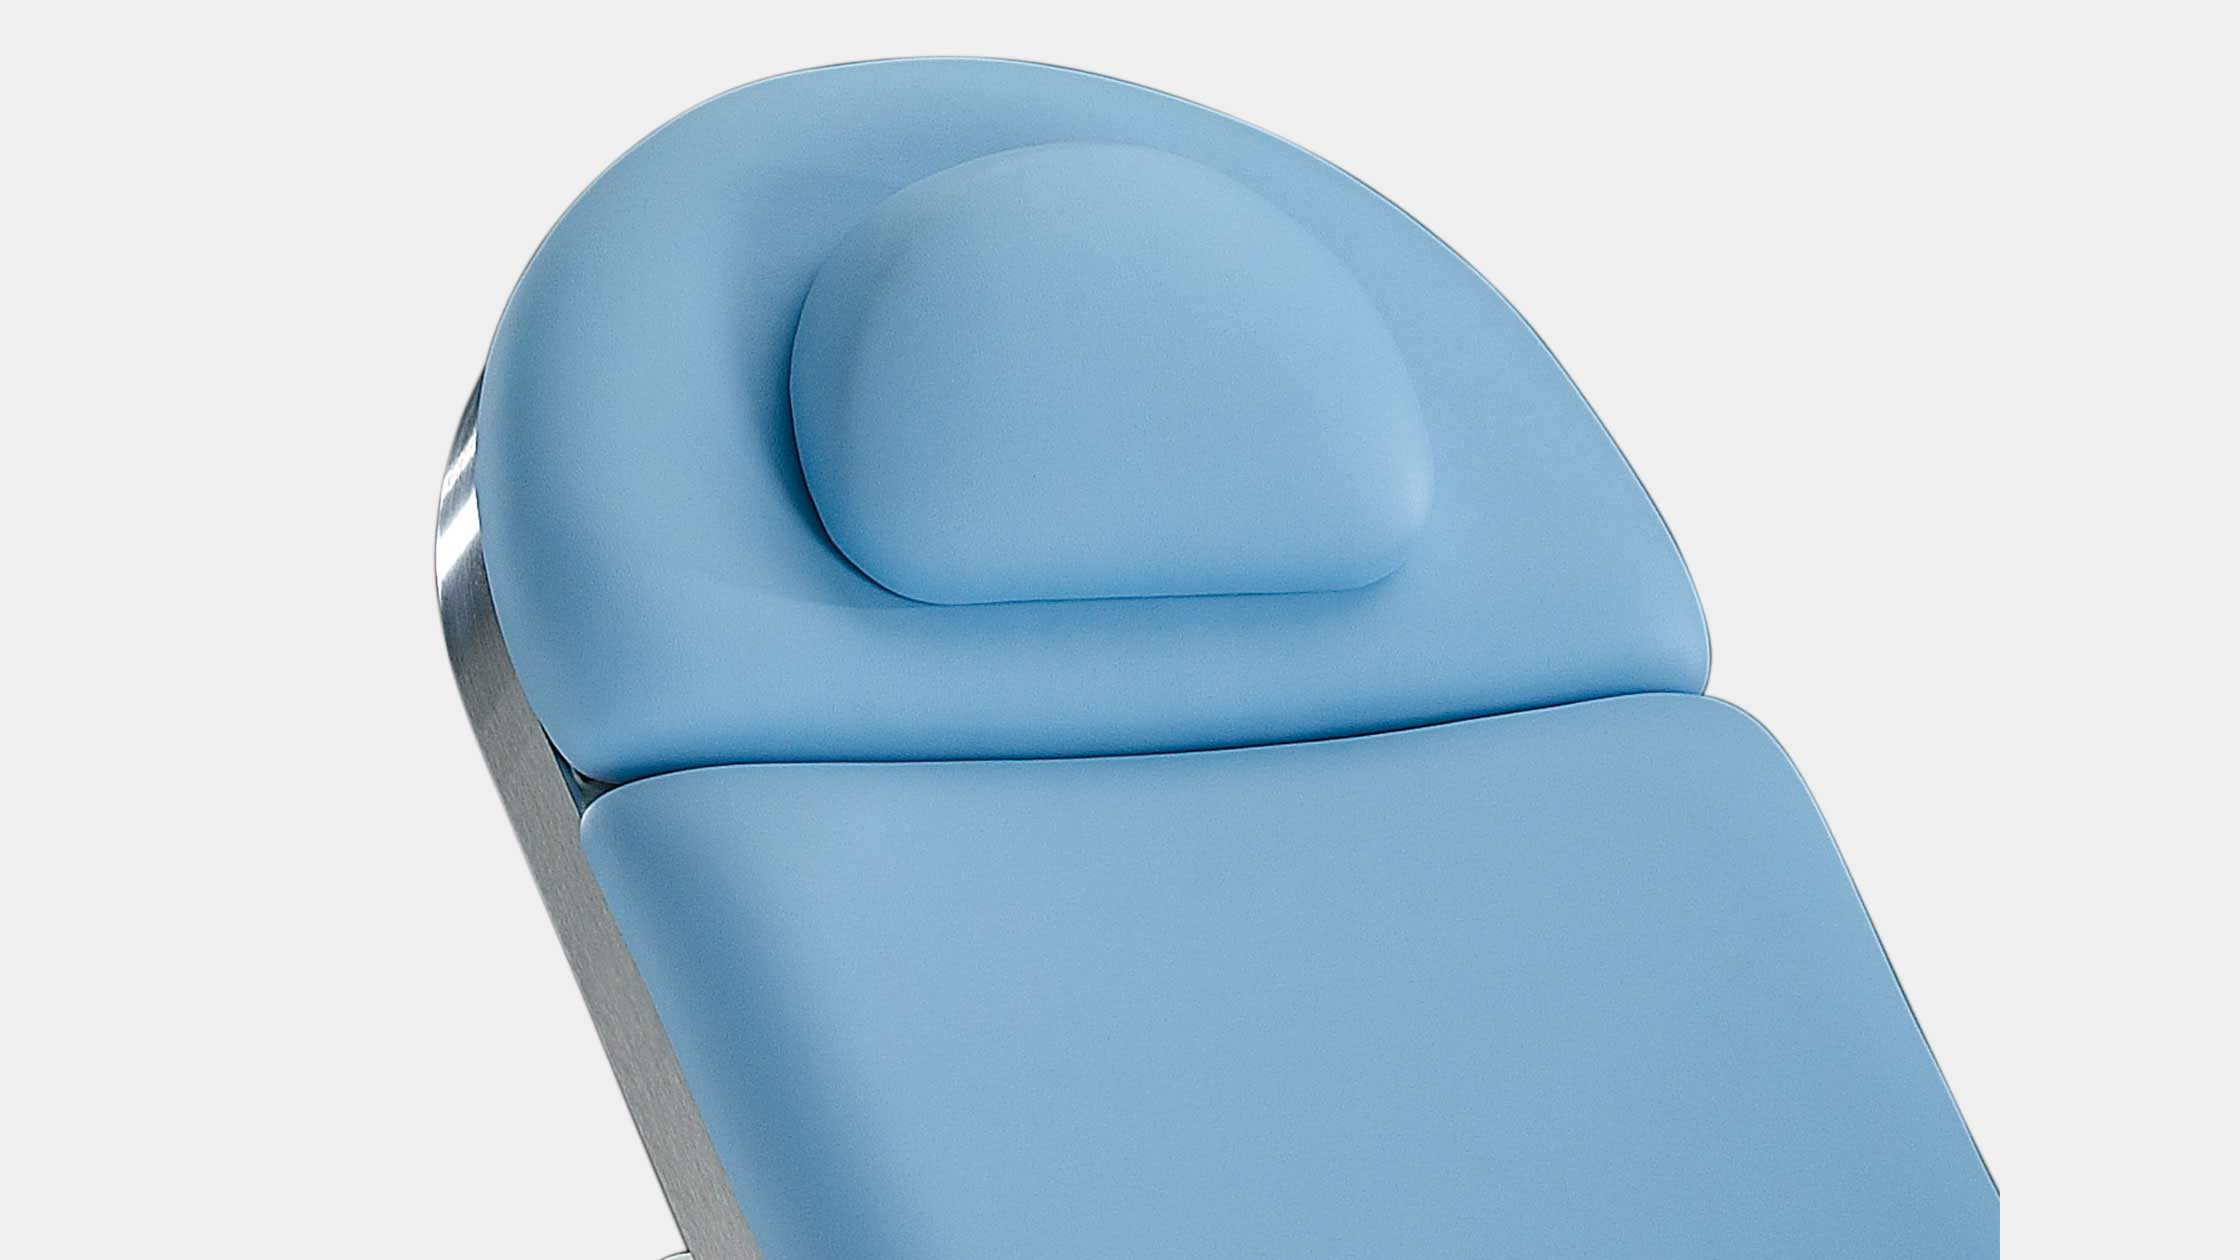 General accessories for examination chairs